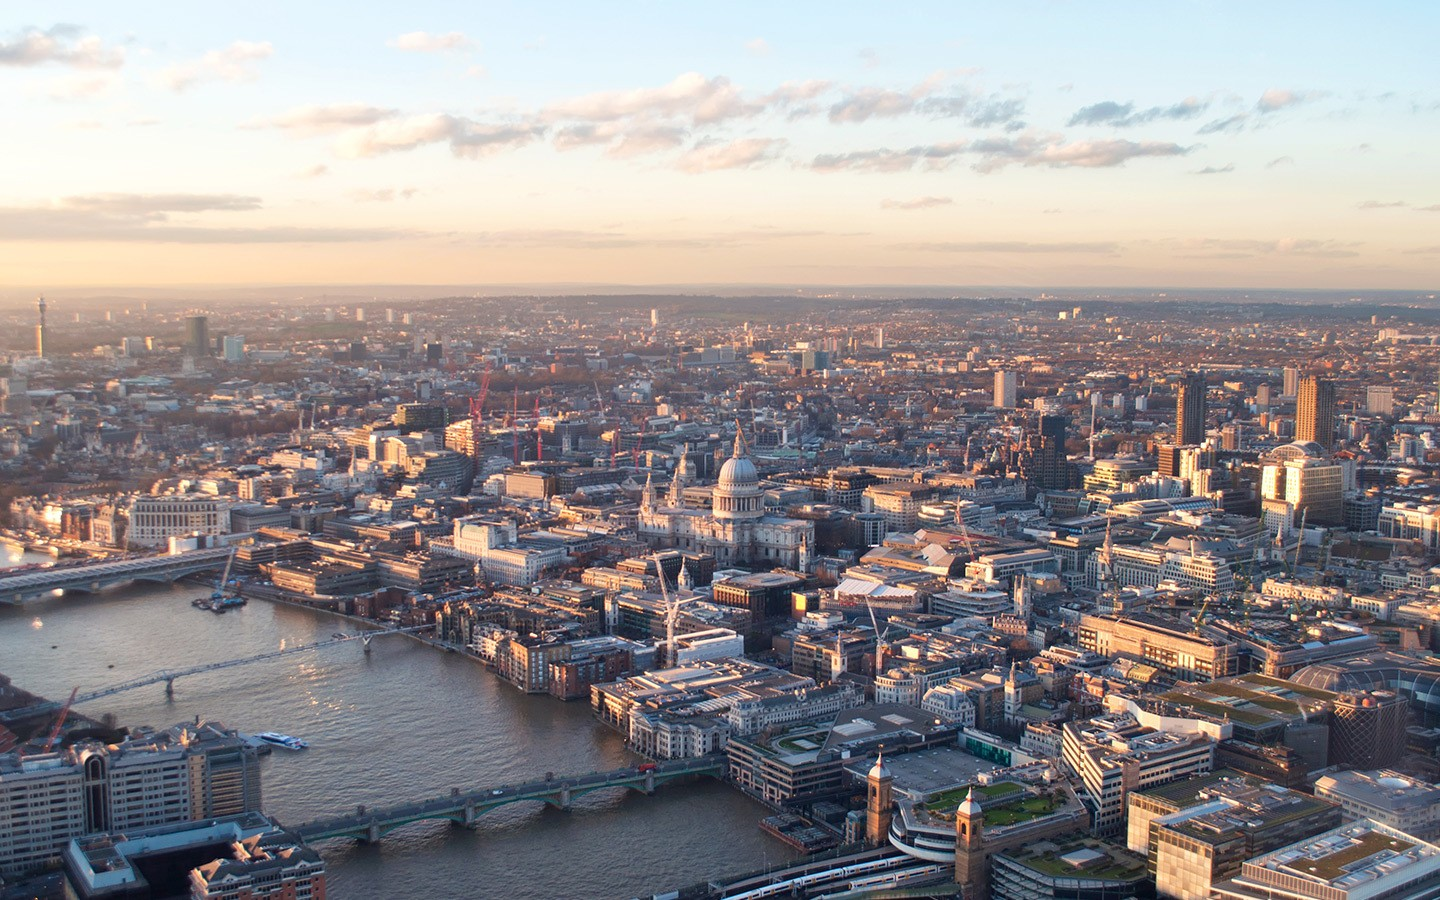 Views over London from the Top of the Shard